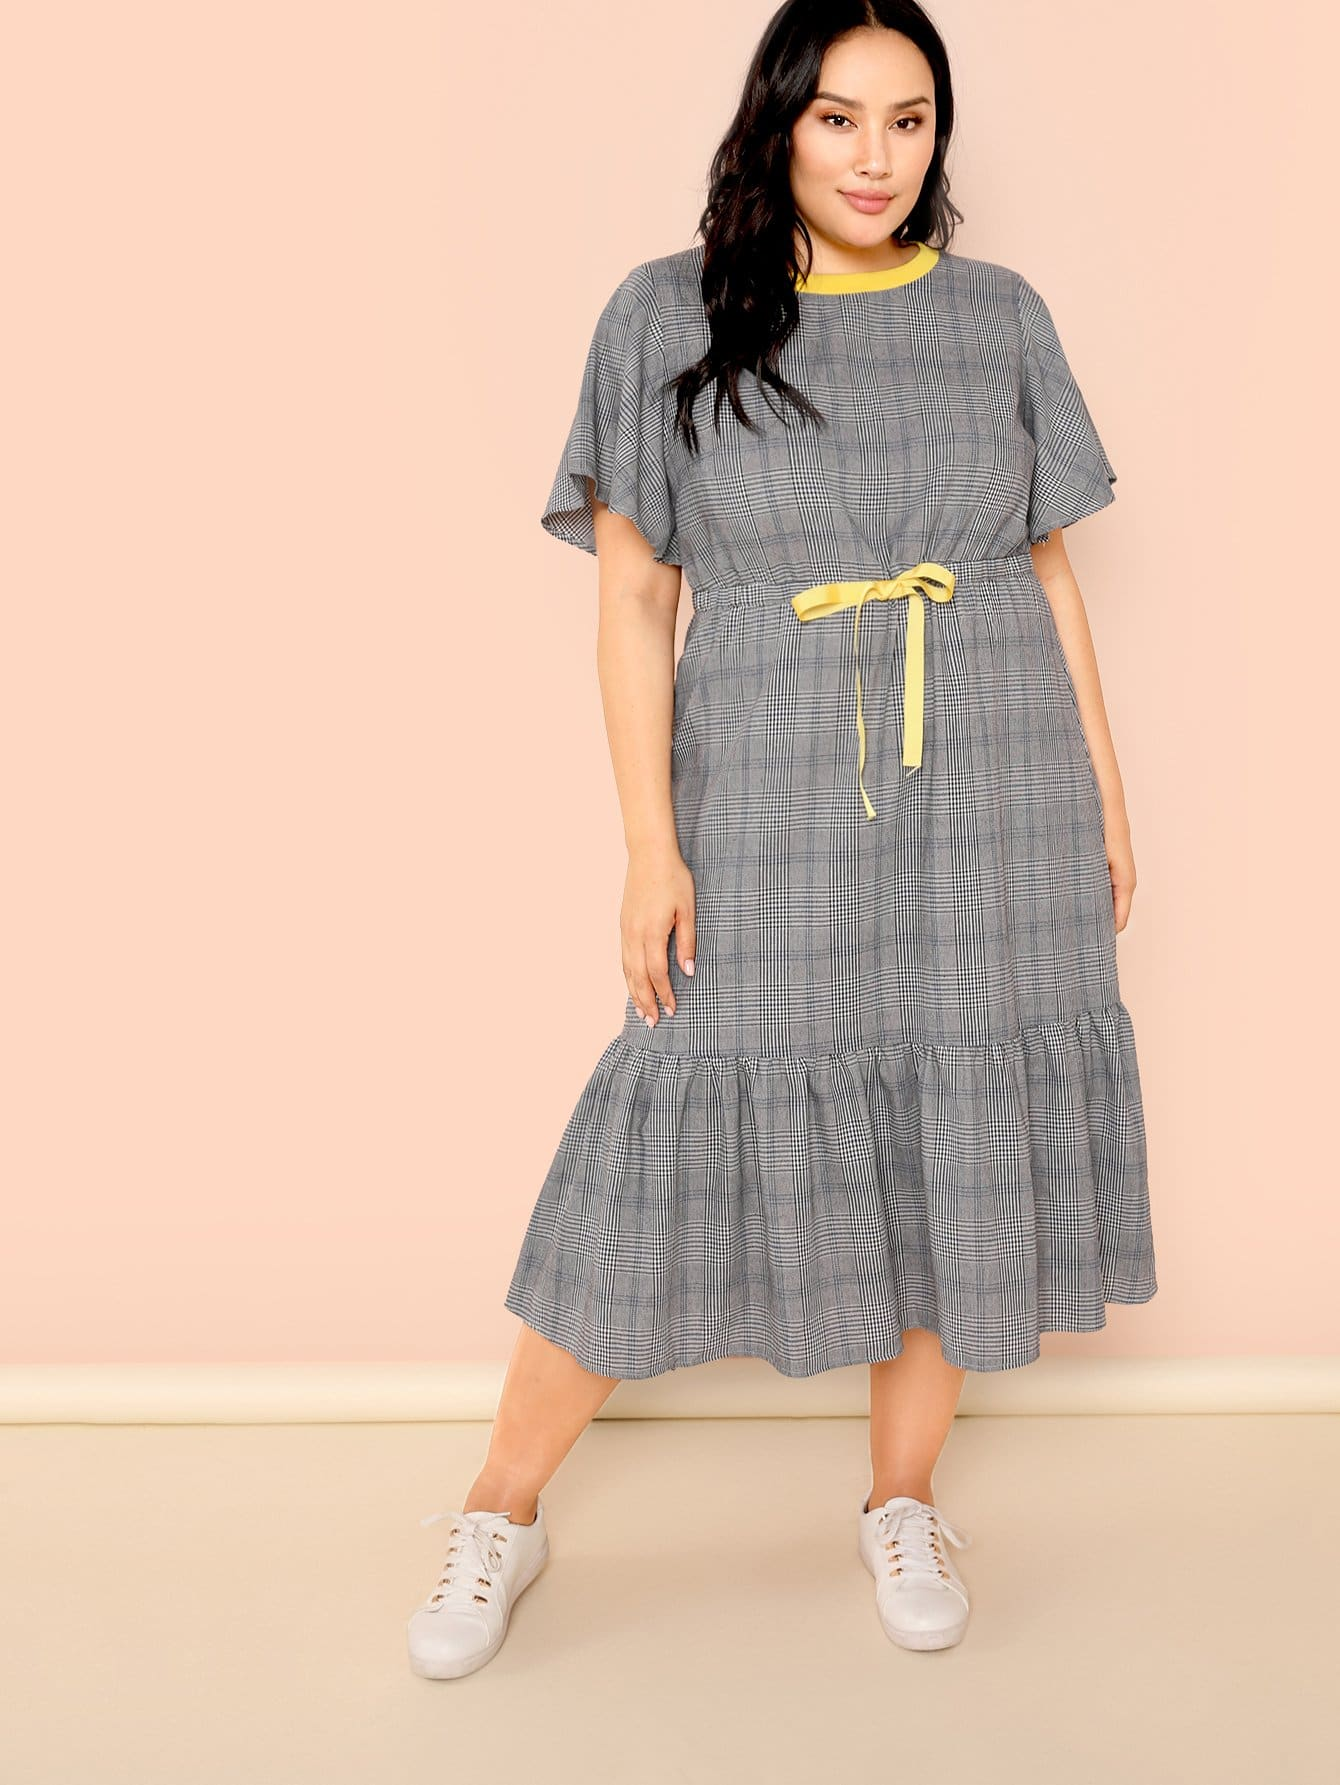 Flutter Sleeve Drawstring Waist Plaid Dress flutter sleeve elastic waist floral dress